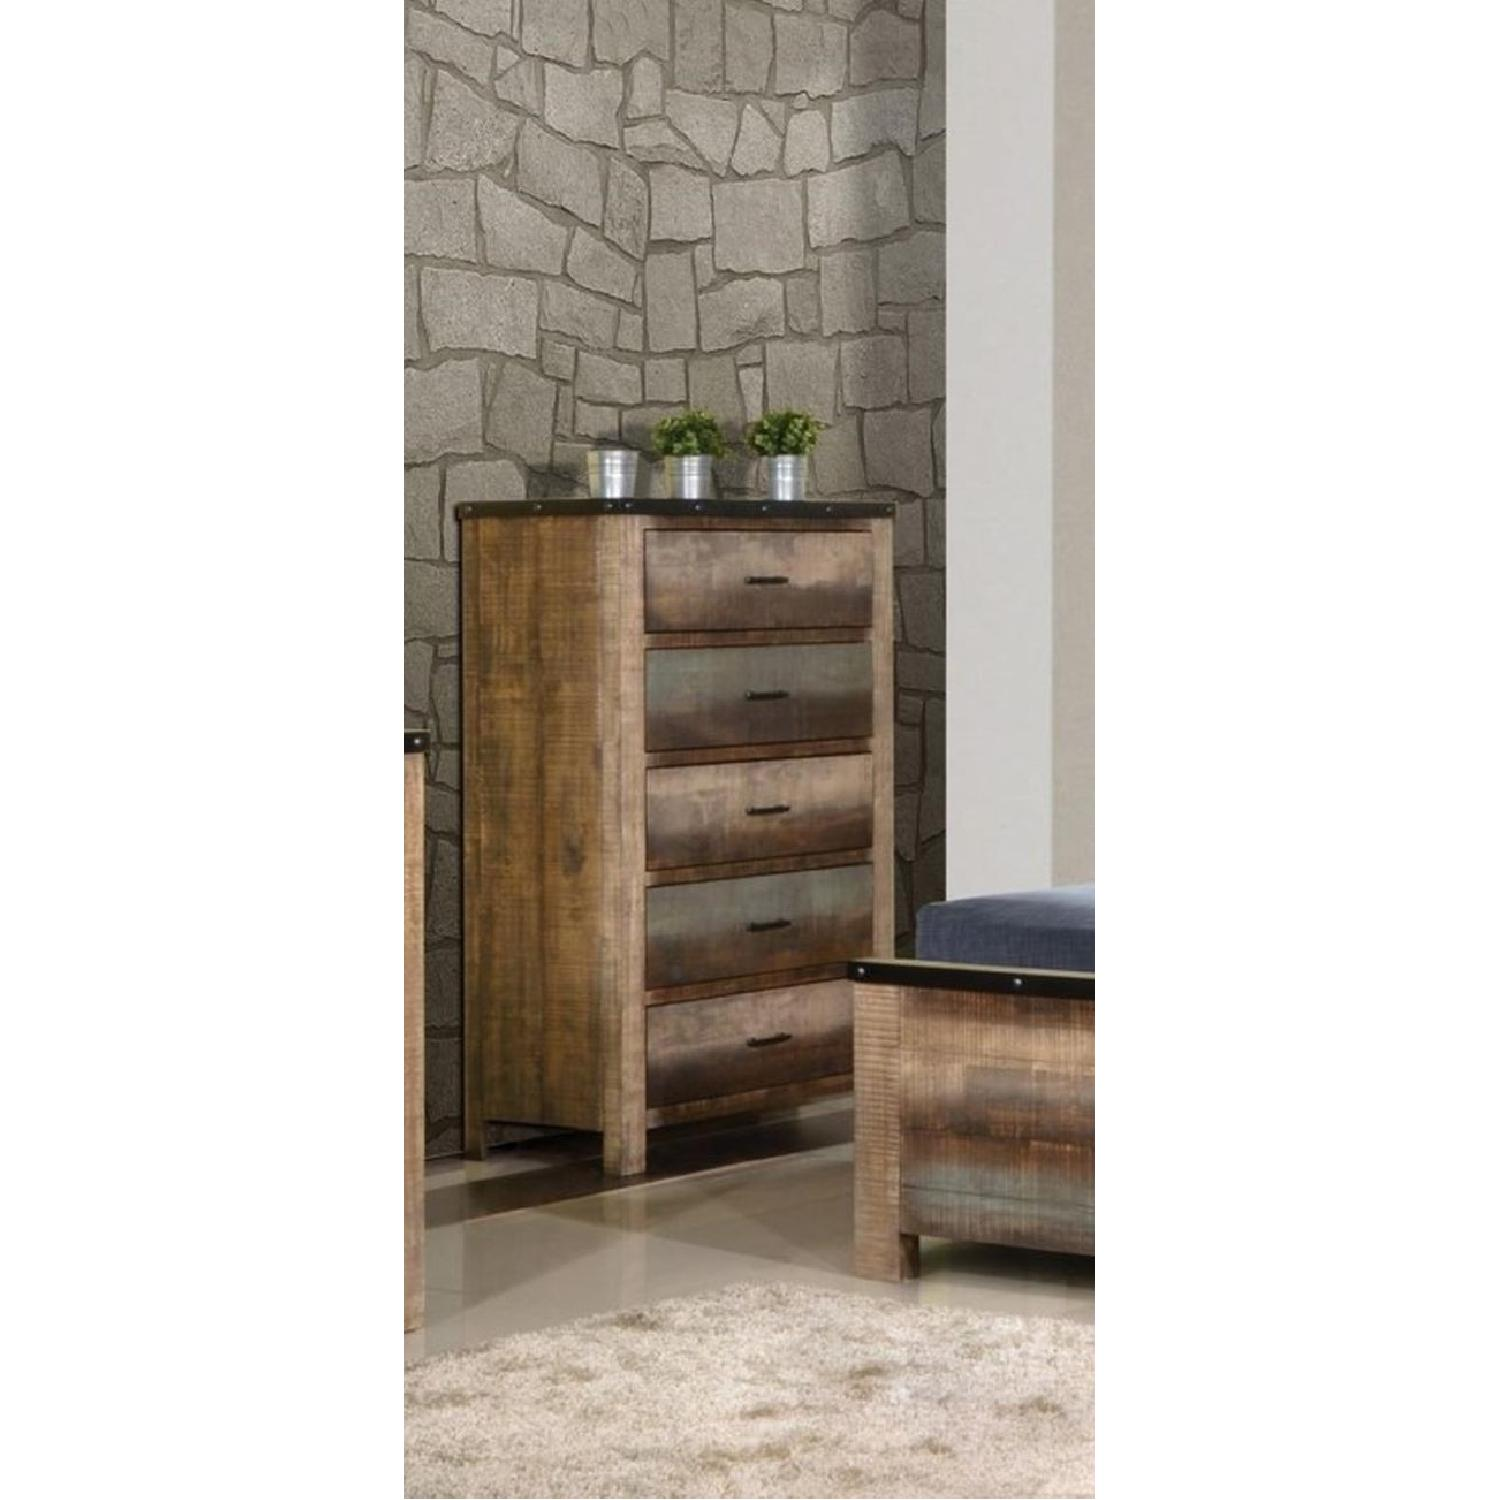 Rustic Style Chest in Solid Wood Multi-Tonal Finish - image-1